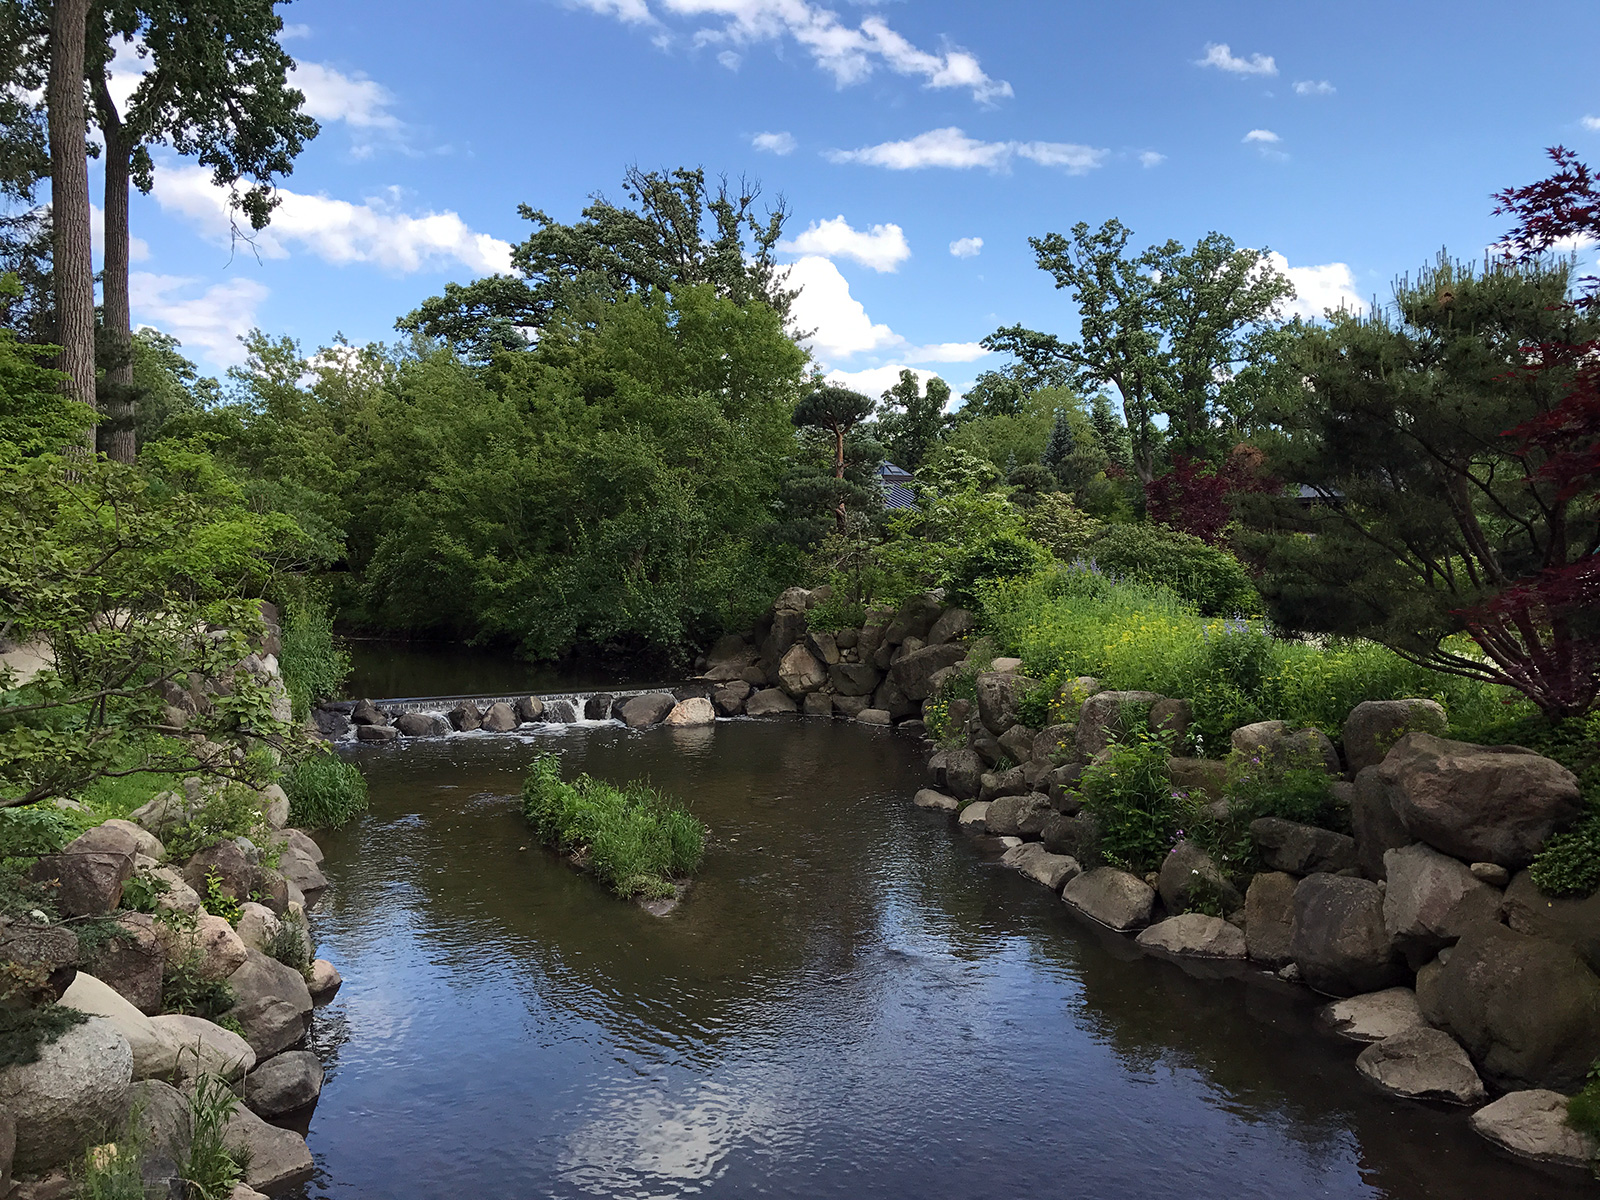 Anderson Japanese Gardens in Rockford, IL by Jets Like Taxis